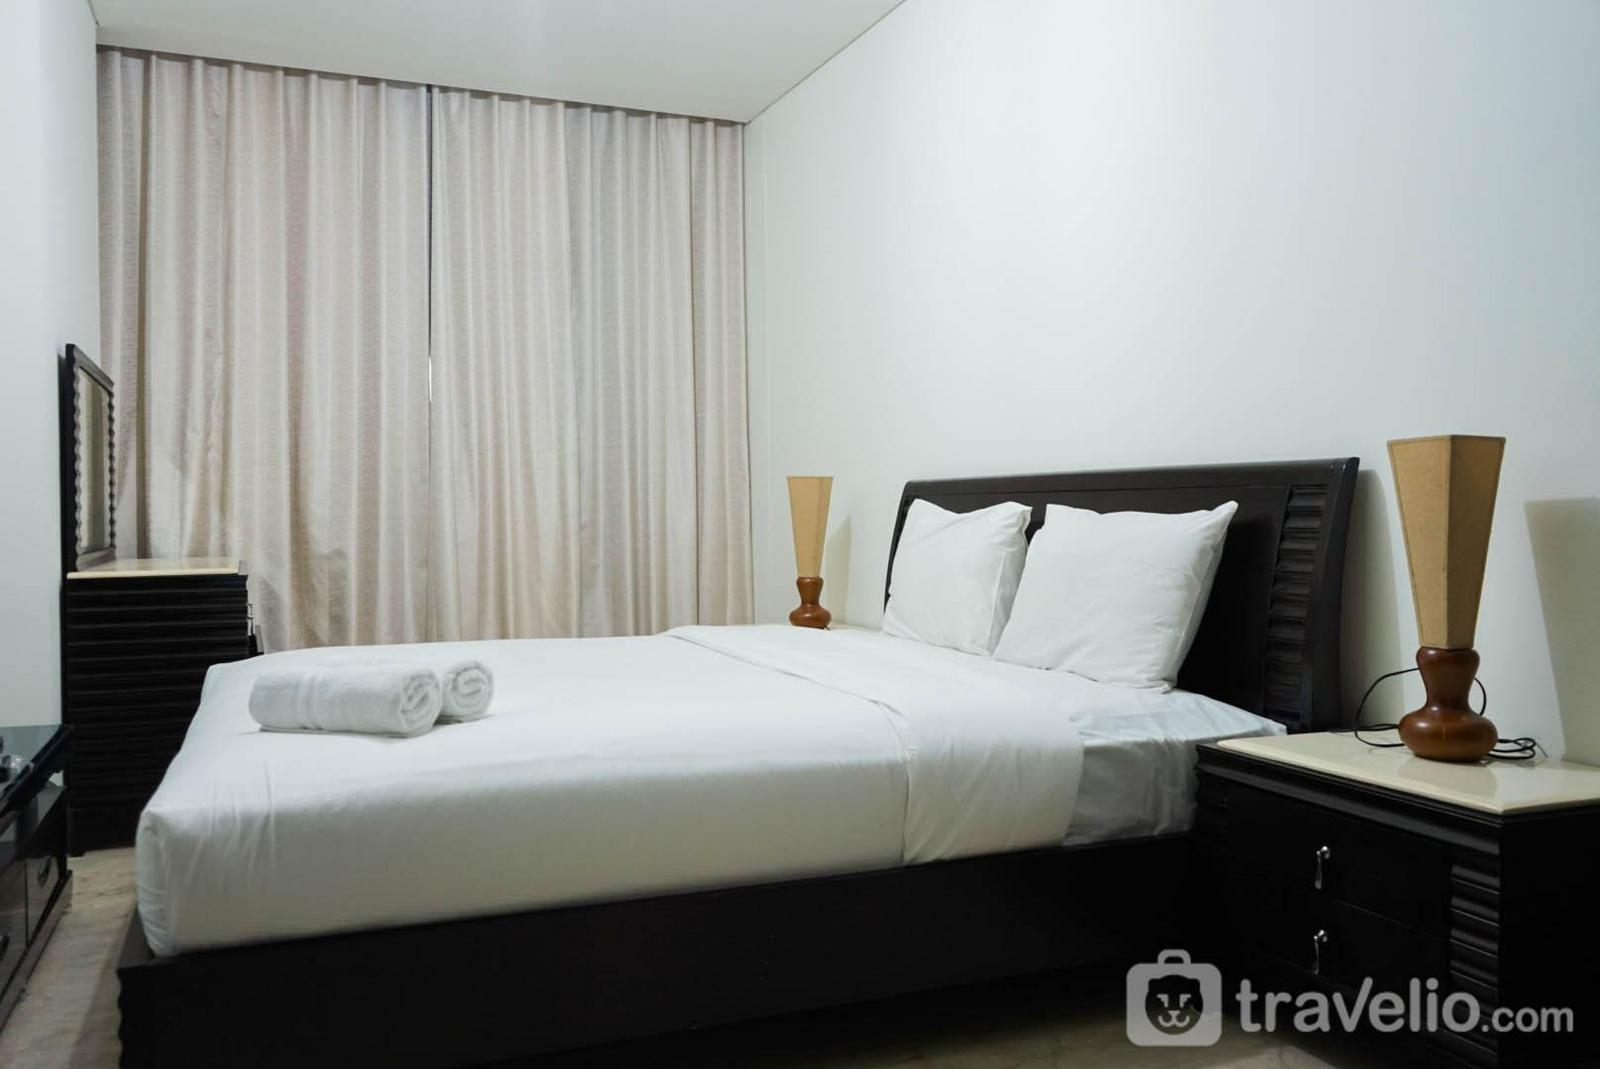 Lavenue Pancoran - 2BR with Study Room at L'Avenue Apartment By Travelio